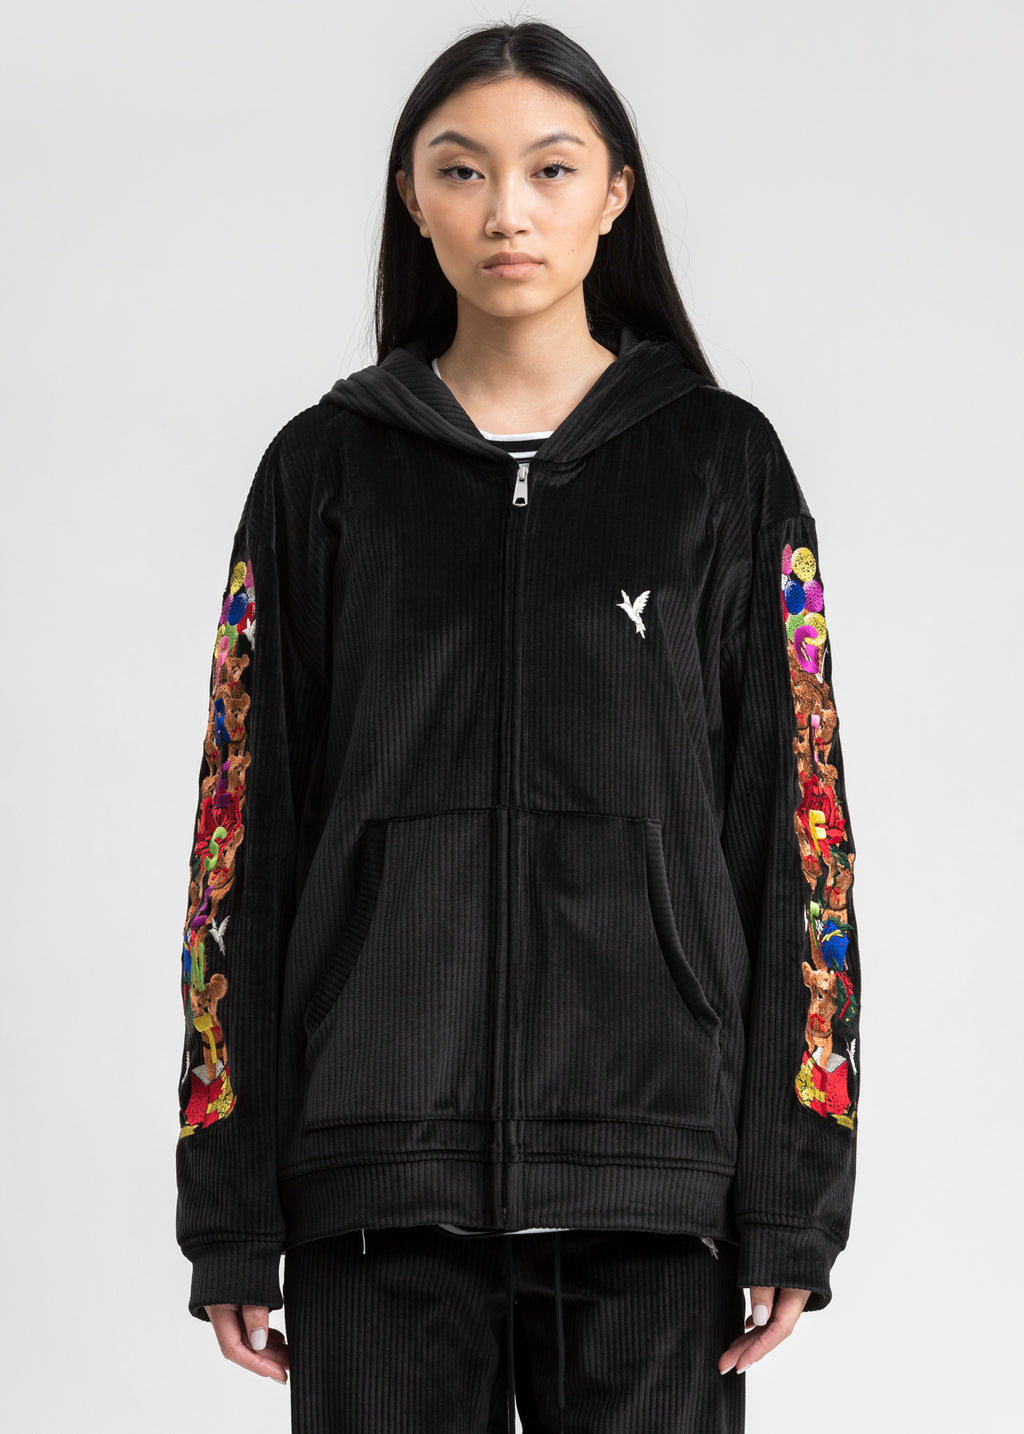 Black Chaos Embroidery Comfy Zip Up Hoodie